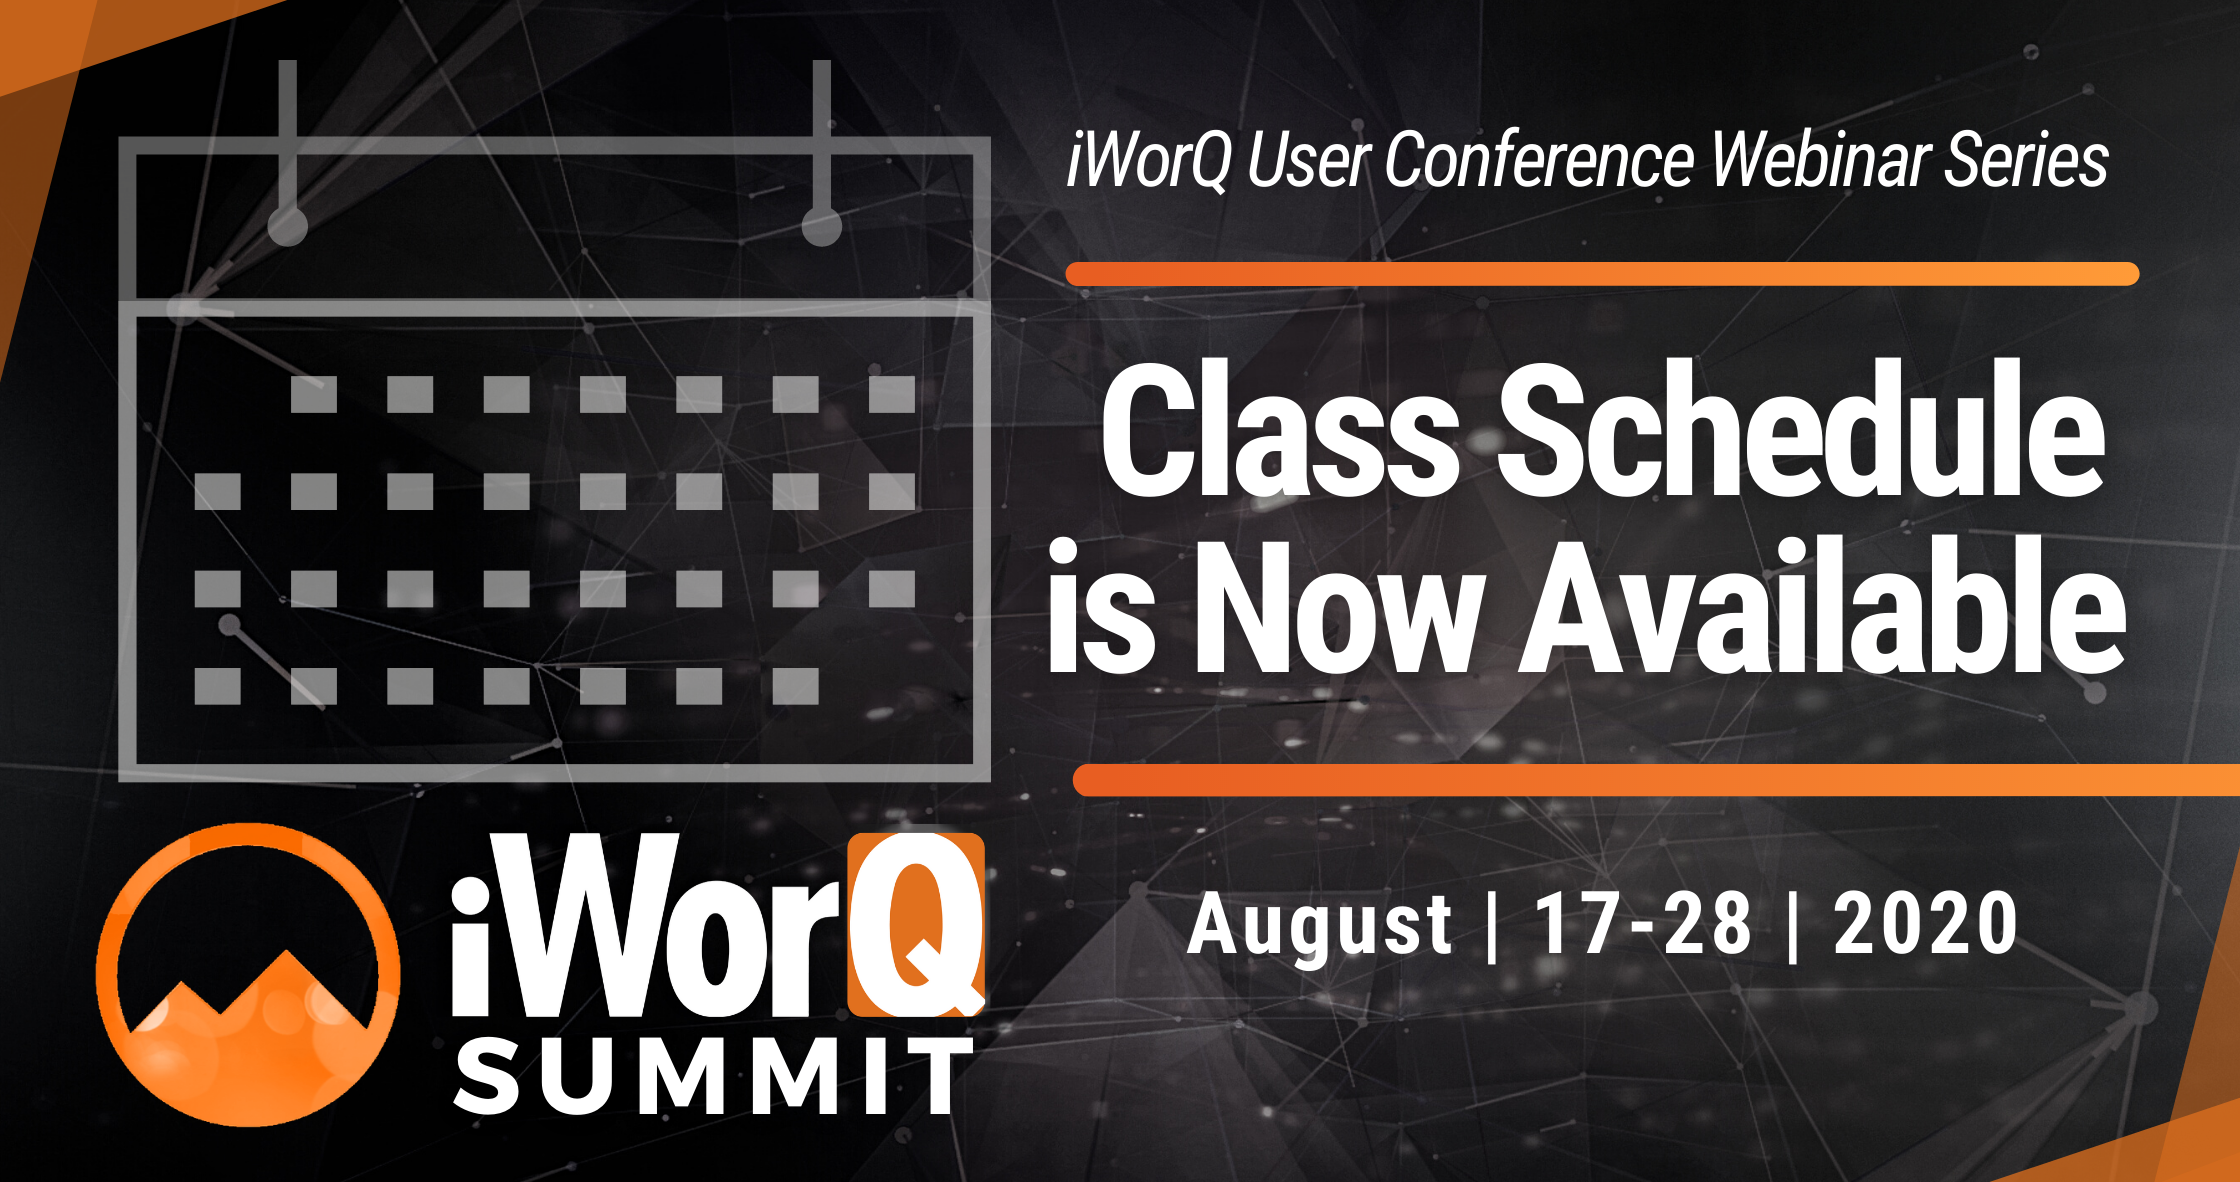 iWorQ Summit Goes Digital